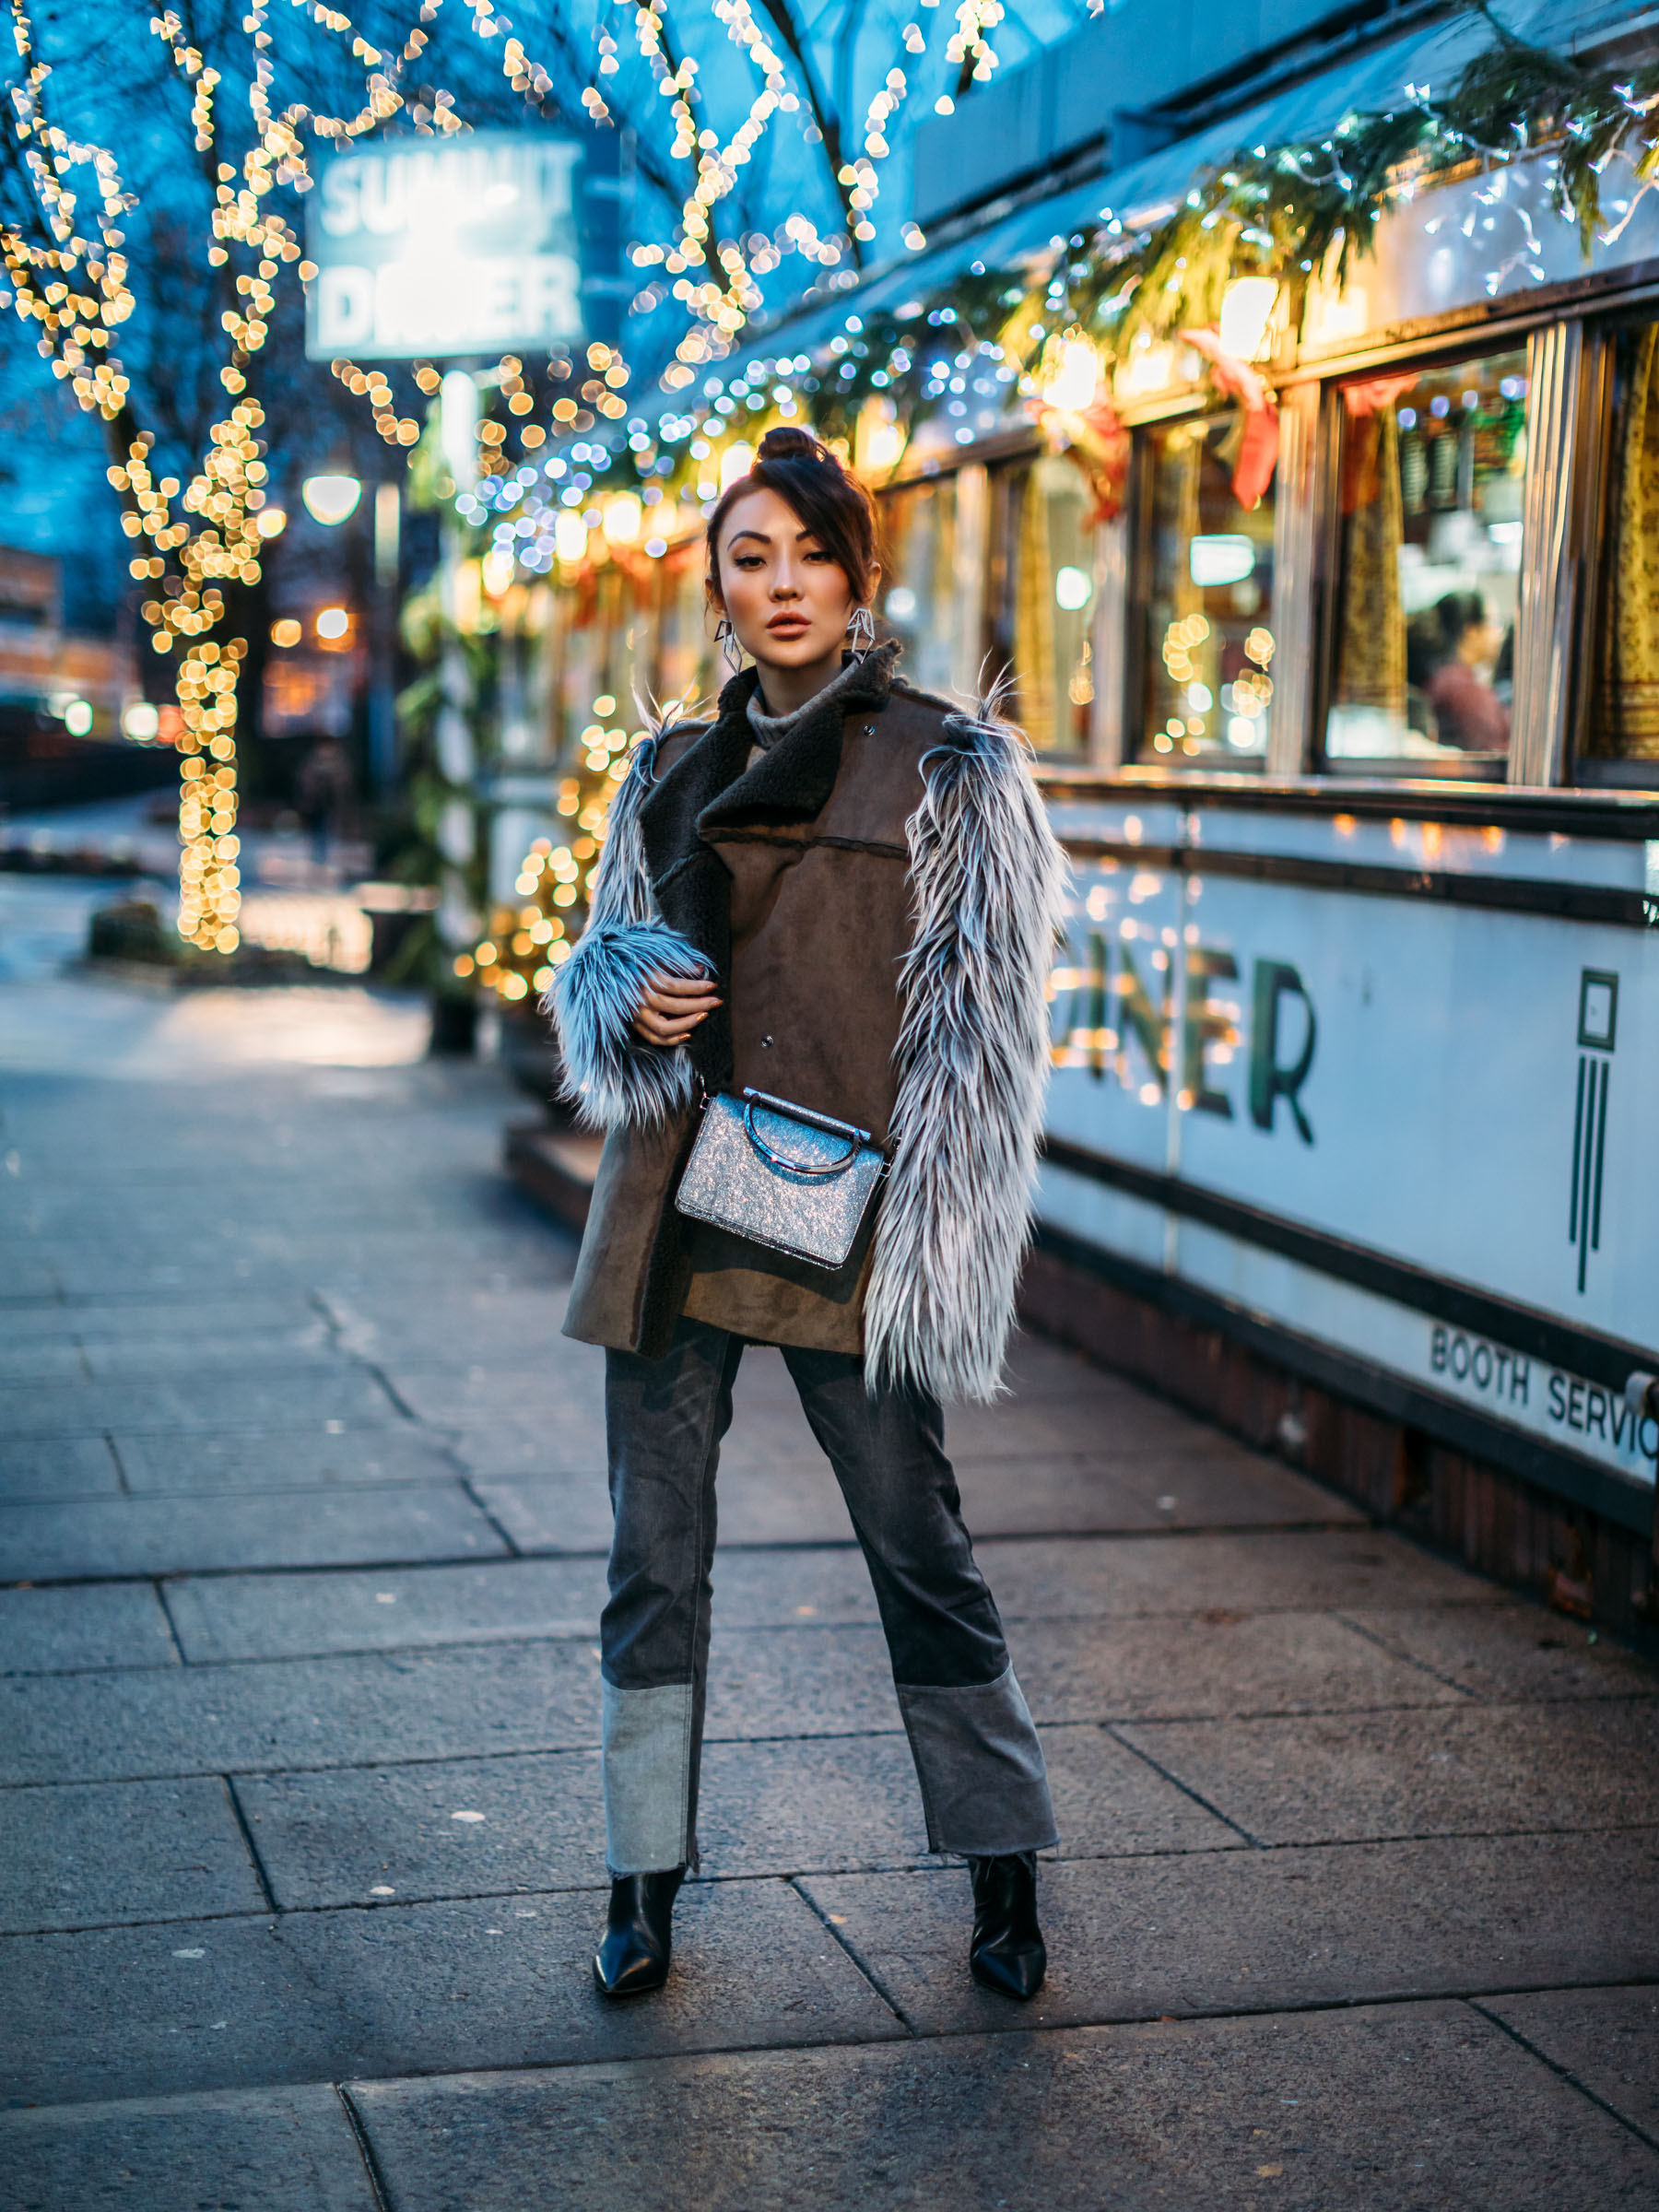 Instagram Outfits Round Up // Notjessfashion.com // Cozy Layered looks, jessica wang, fashion blogger, new york fashion blogger, street style fashion, ootd, asian blogger, fur coat, suede coat, patchwork denim, glitter handbag, glitter clutch, winter look,